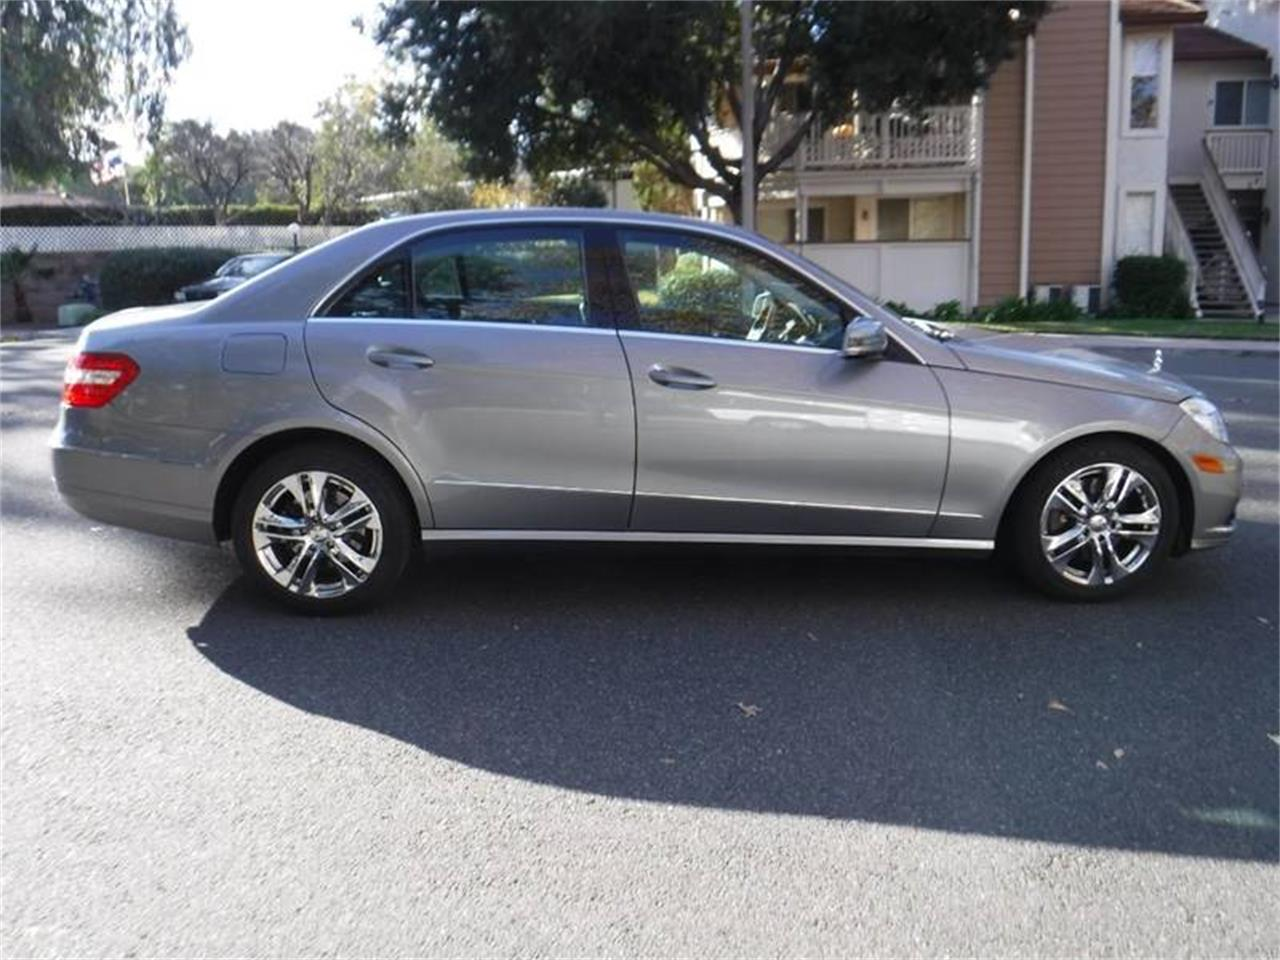 2010 Mercedes-Benz E-Class for sale in Thousand Oaks, CA – photo 4